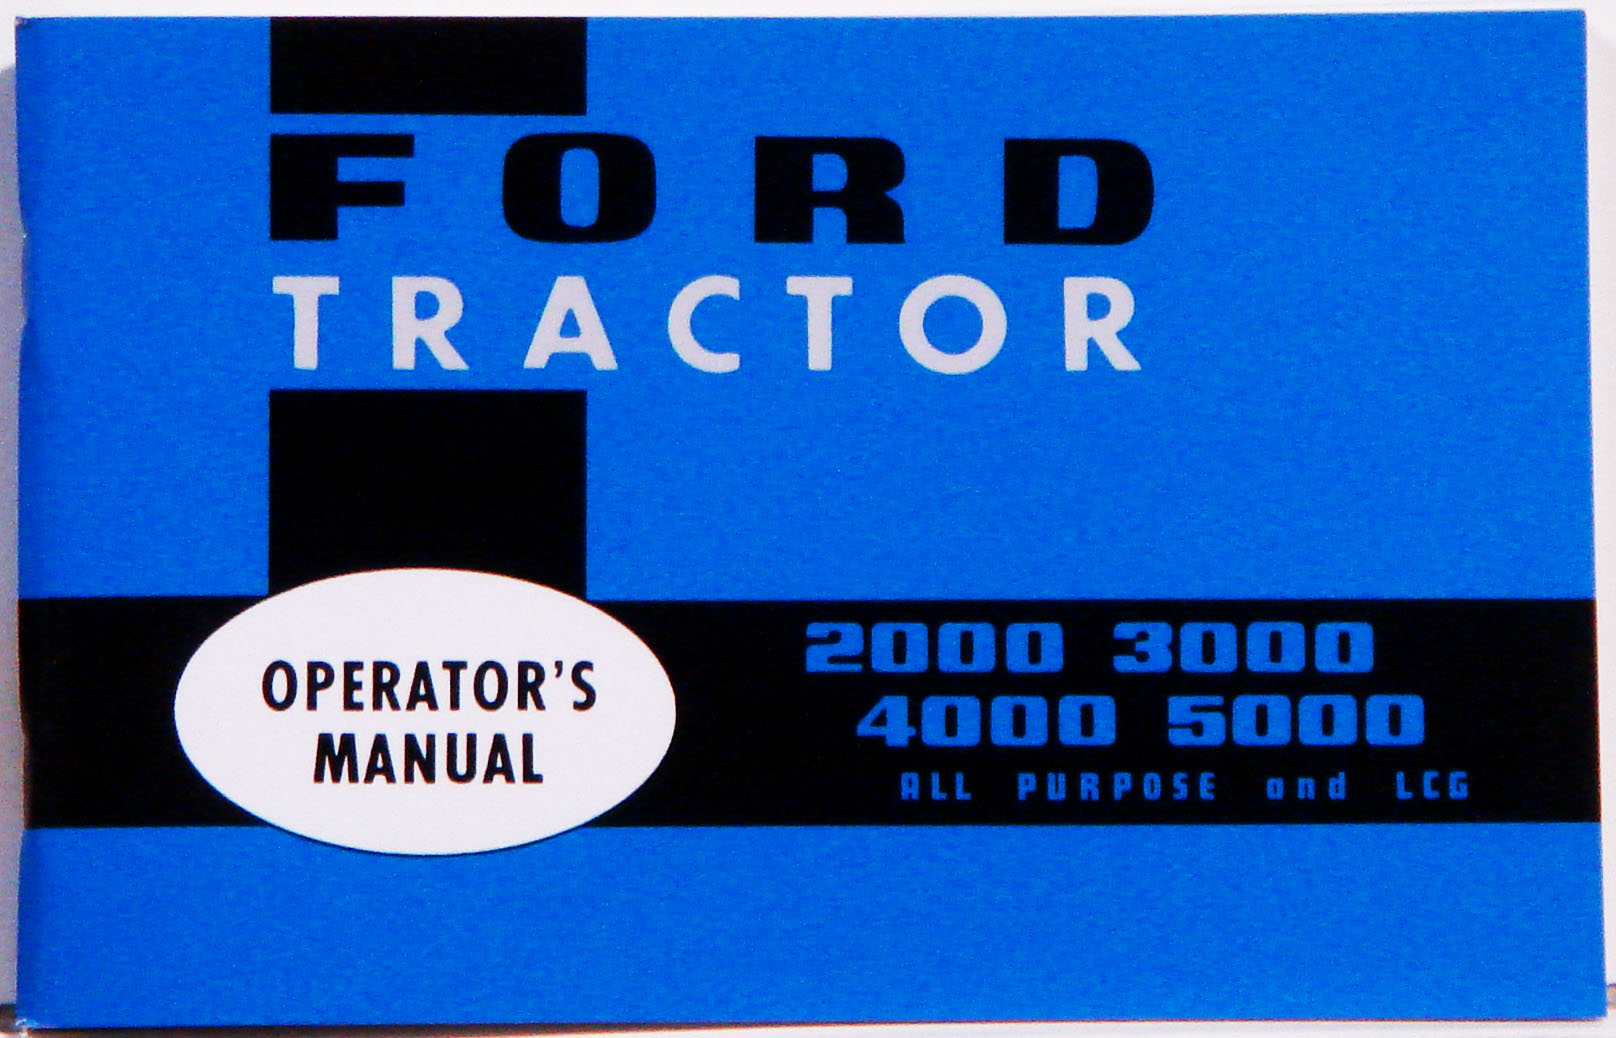 ford tractor owners manuals rh cdmanuals net 2000 Ford Garden Tractor Manuals ford 2000 tractor owners manual pdf